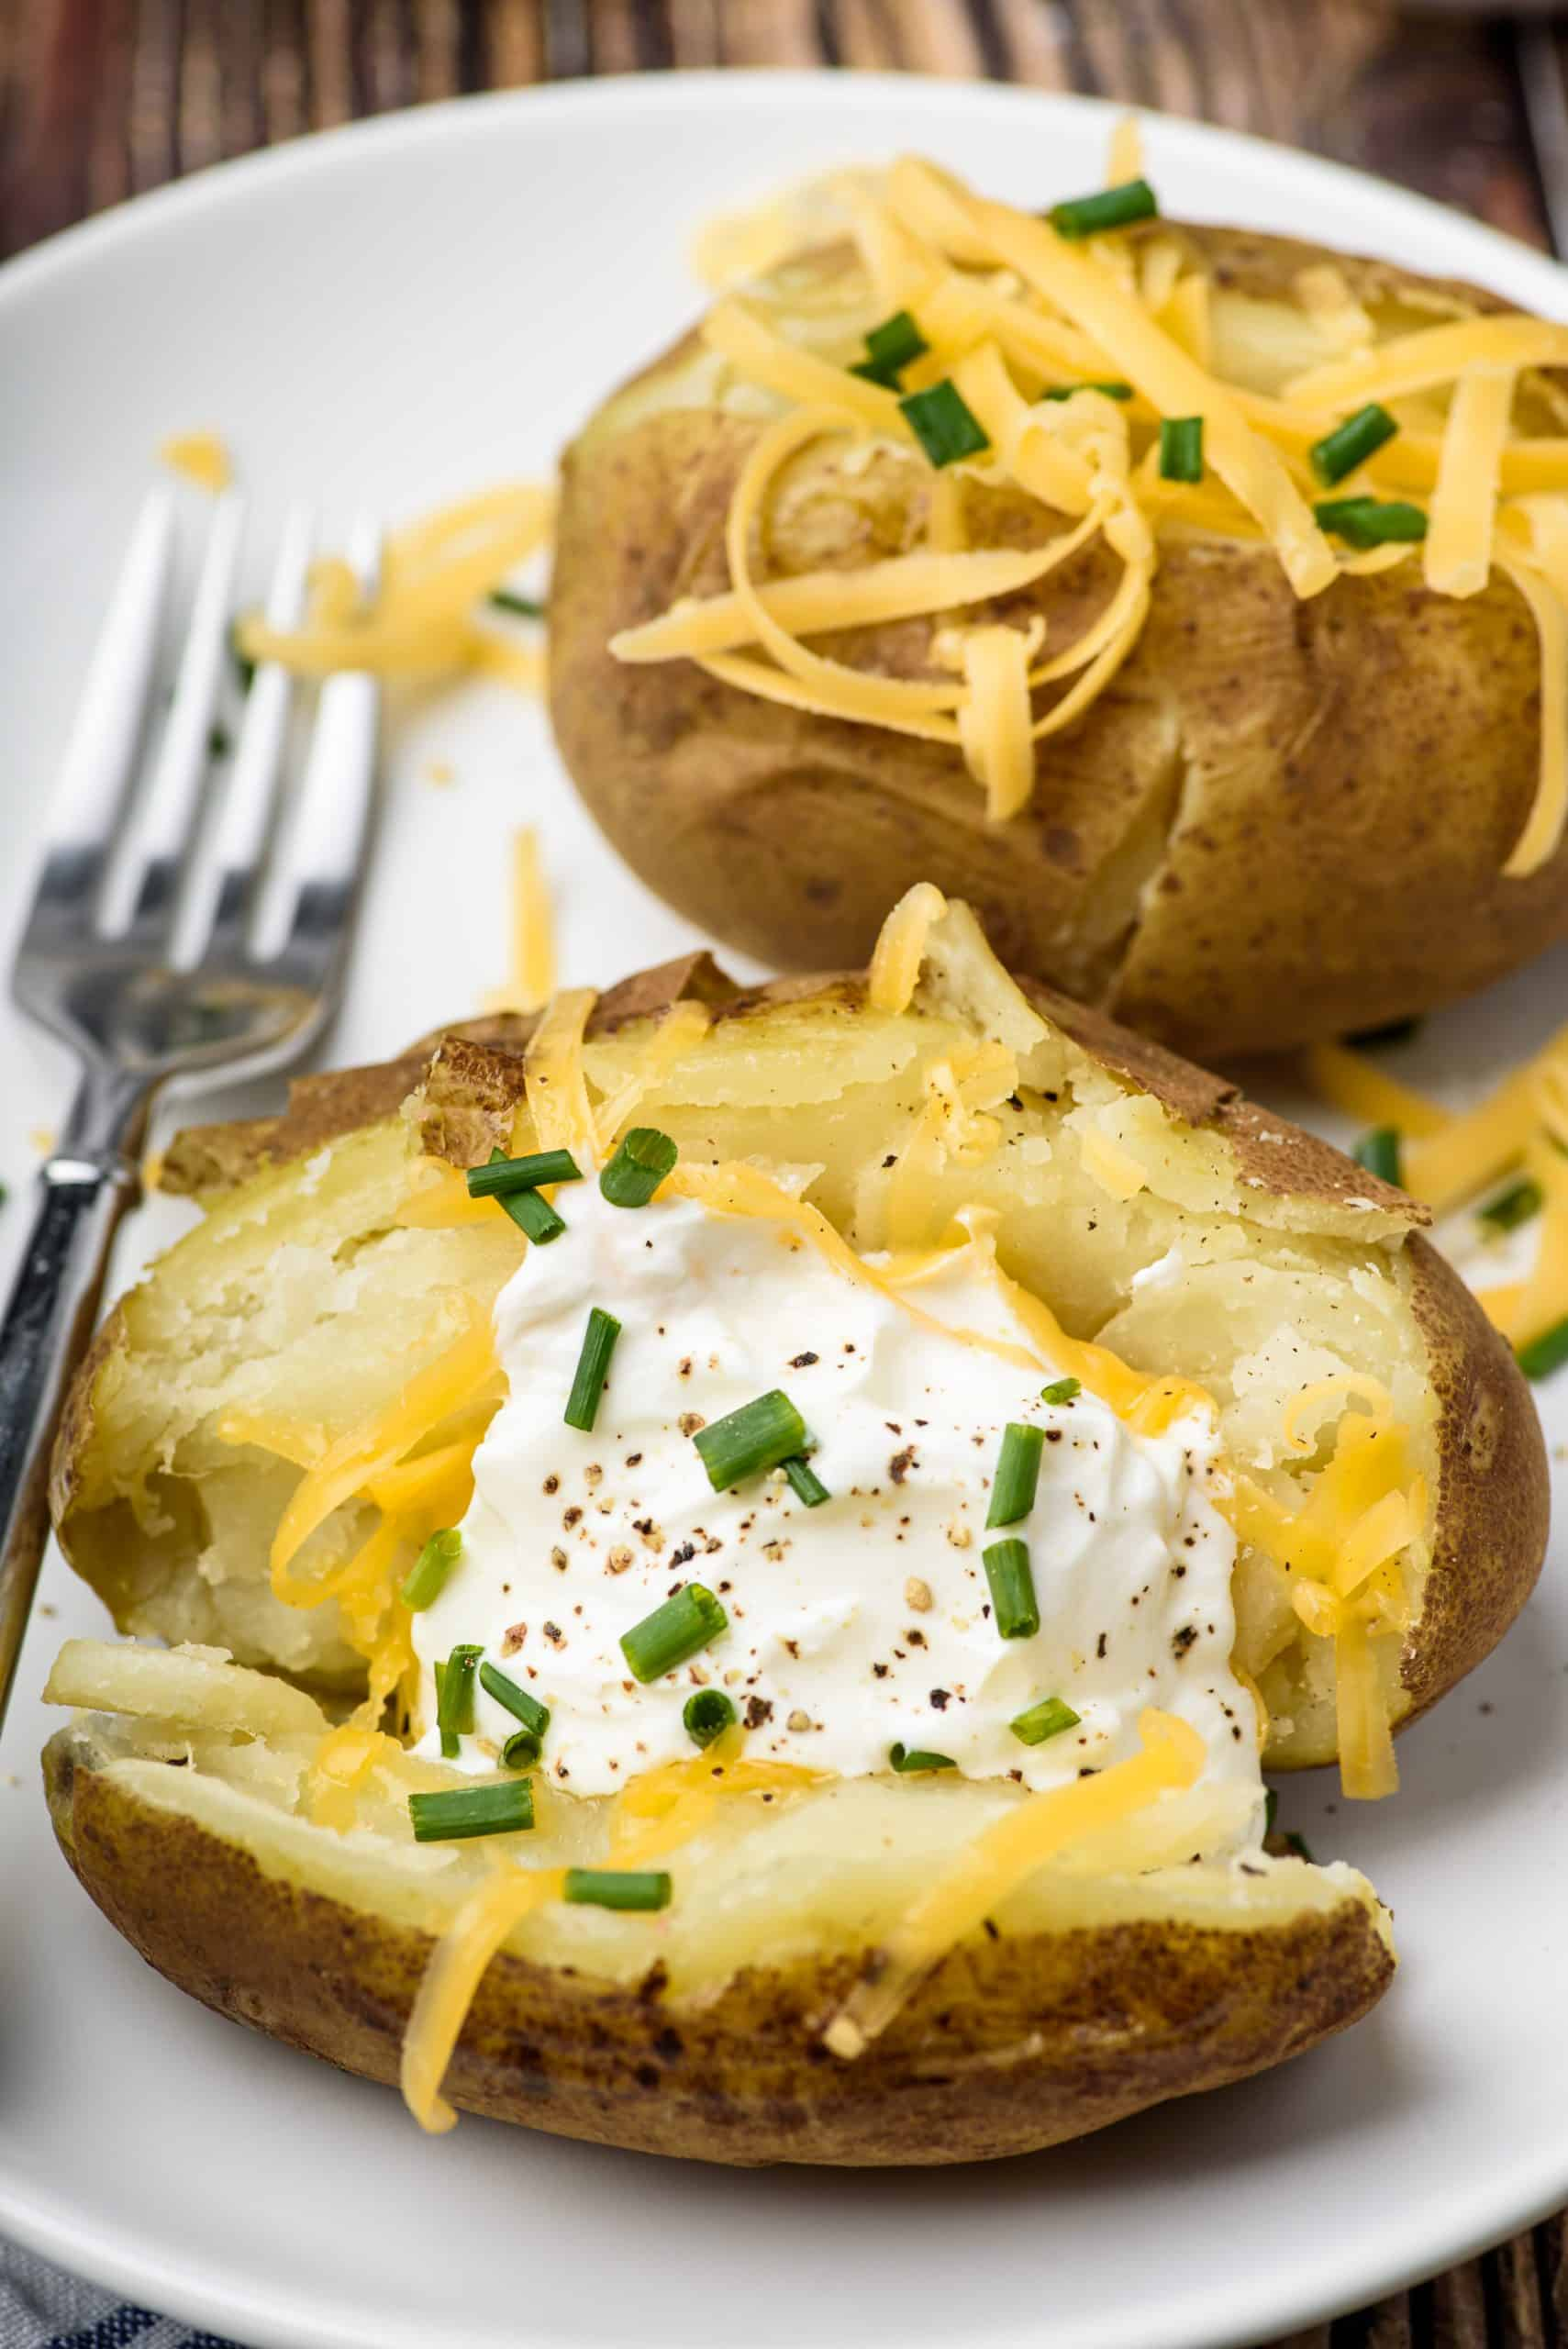 Baked potatoes open in half and topped with sour cream, cheese, and chives.